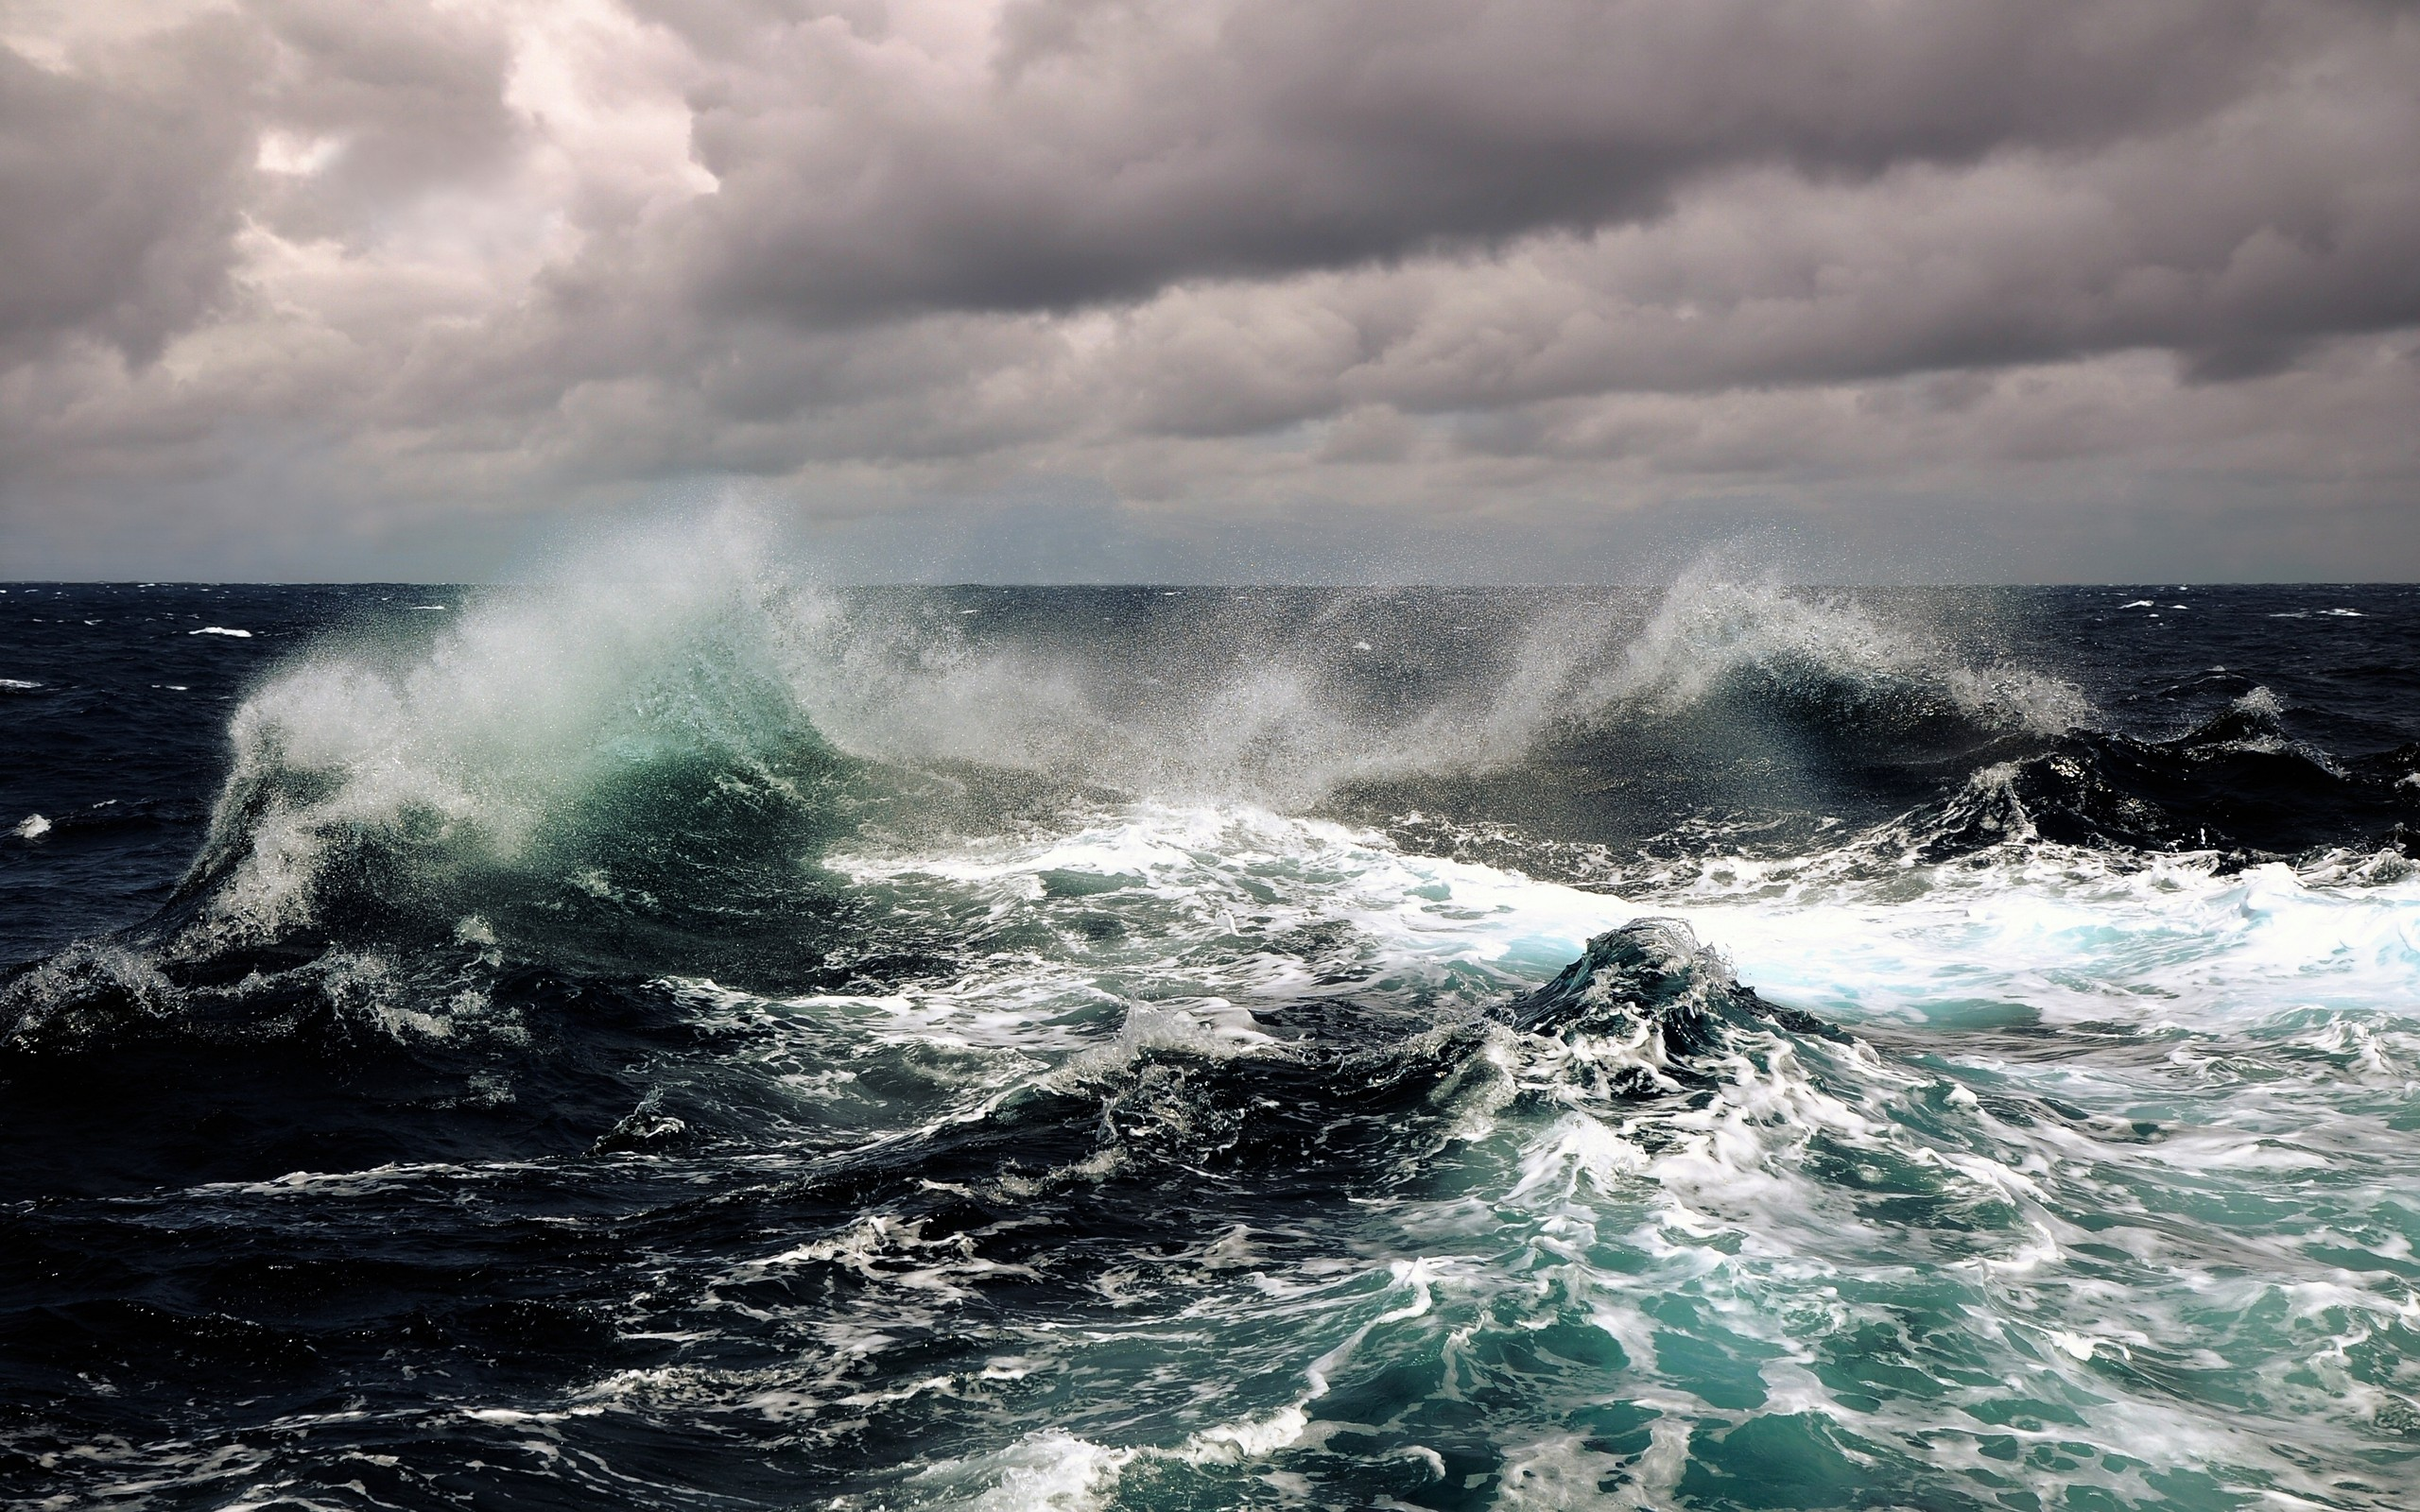 Waves storm seascapes wallpaper | 2560x1600 | 9555 ...